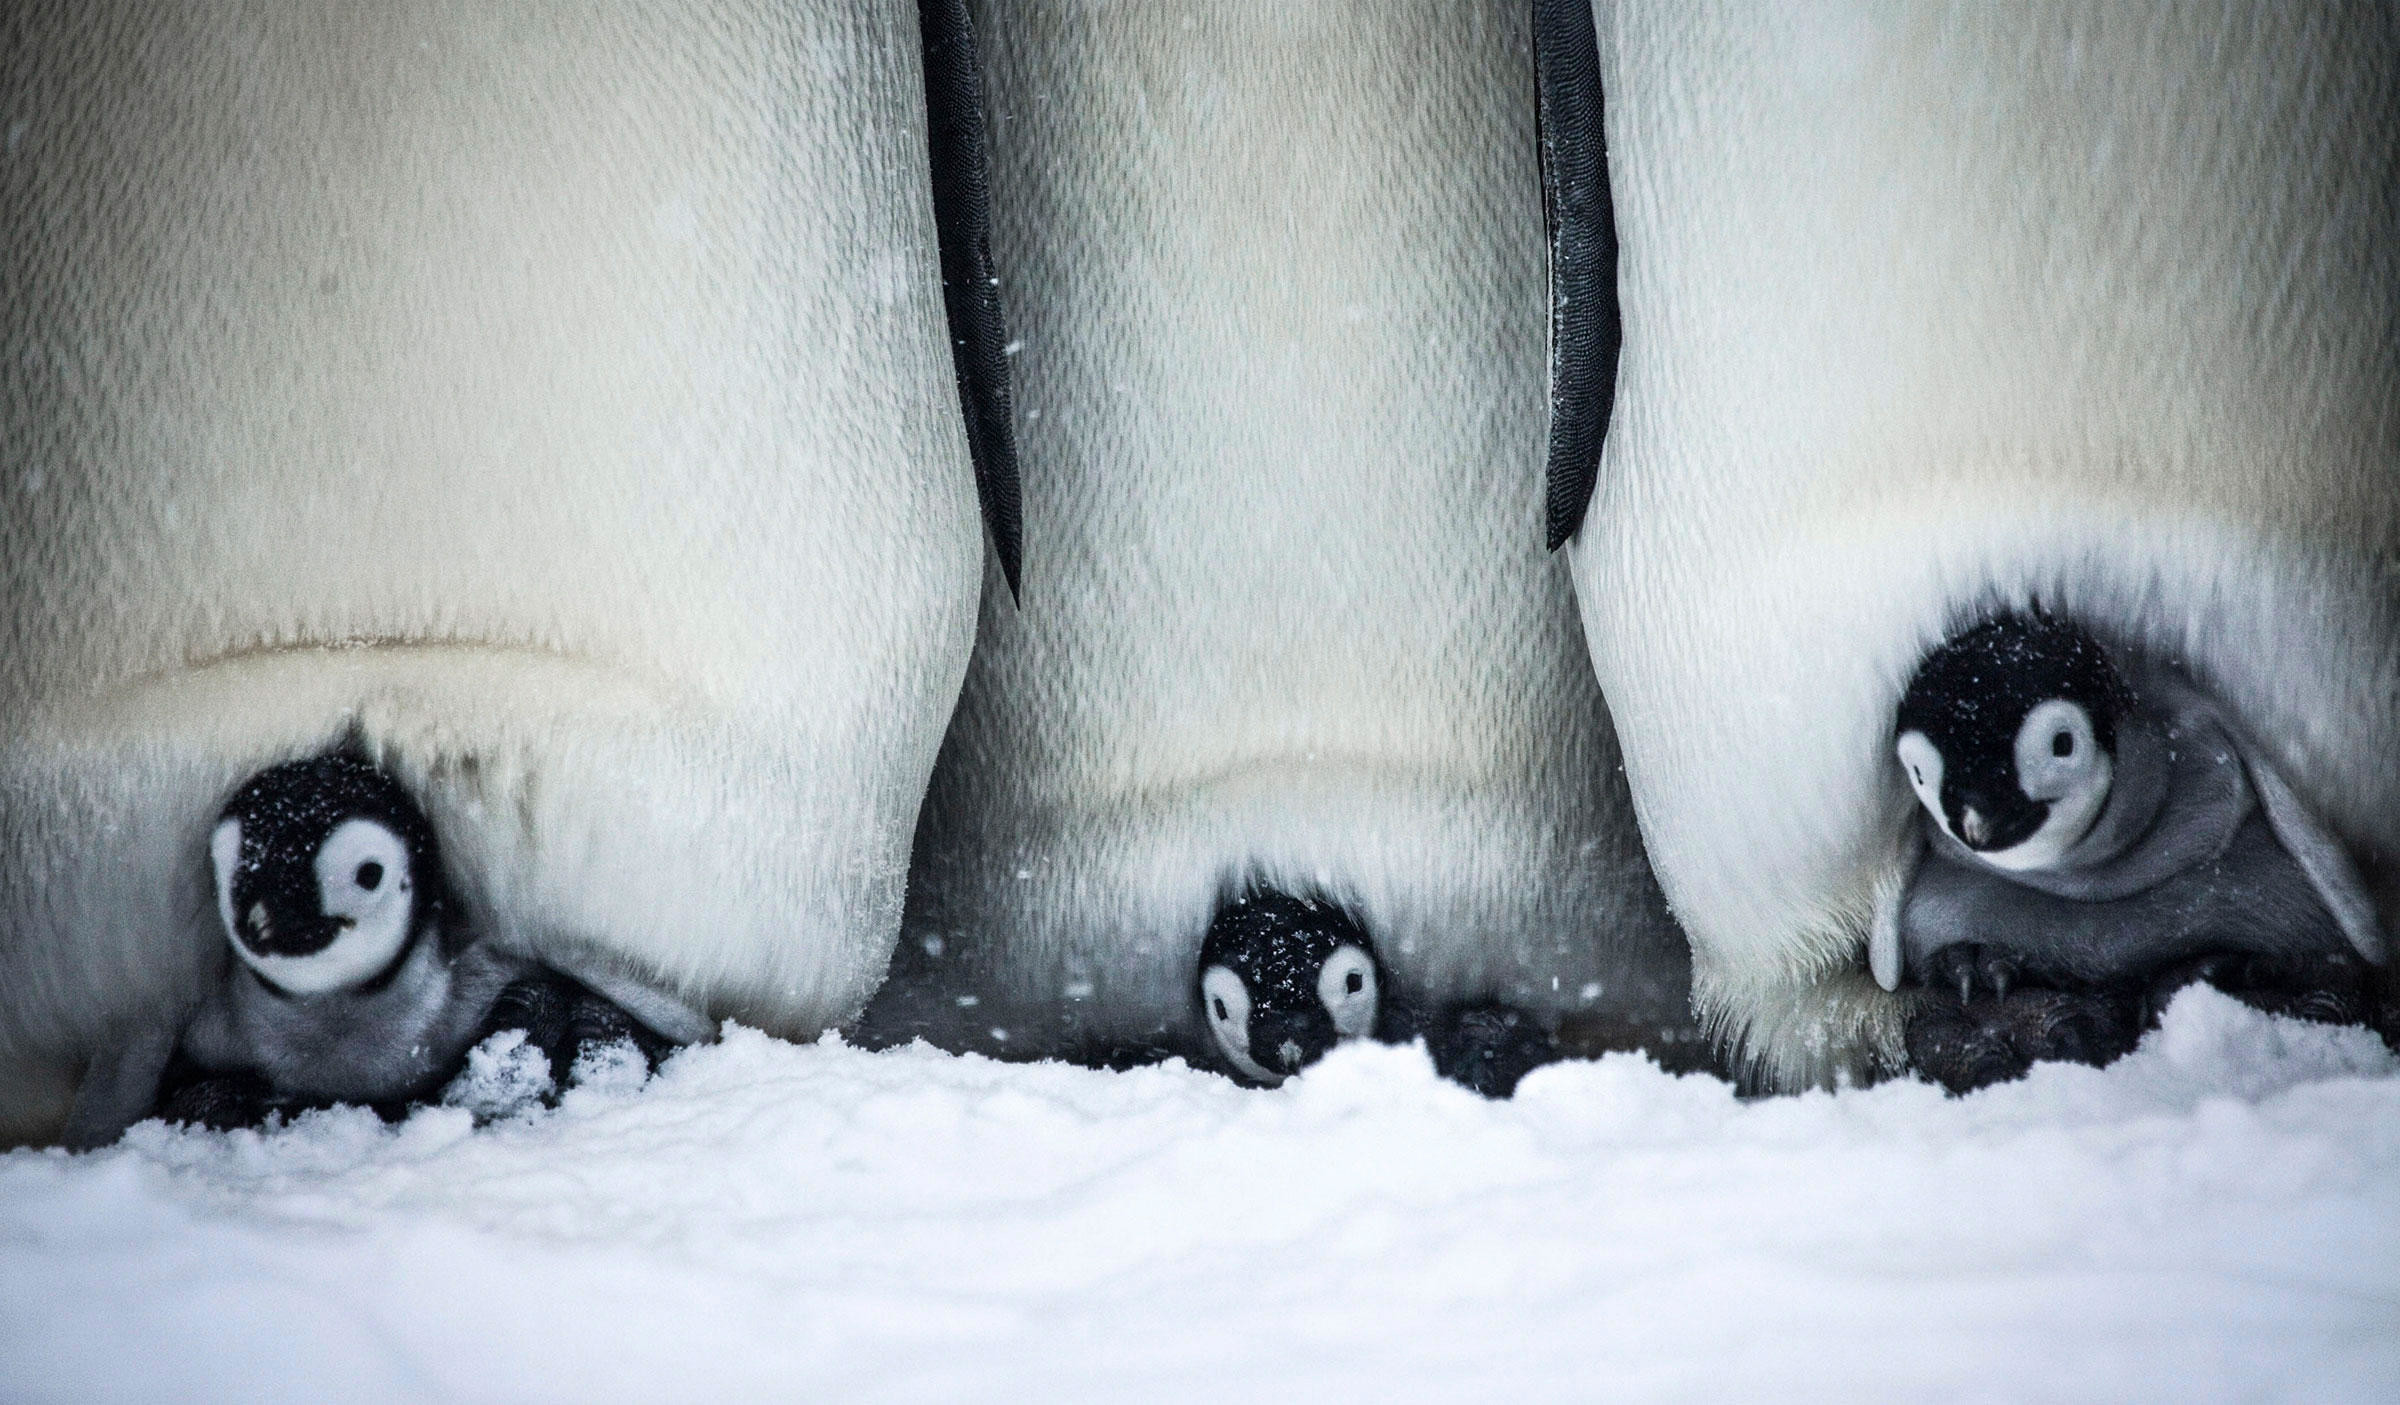 Watch a Cuddly Baby Penguin Struggle to Survive in its Chilly Home | Audubon